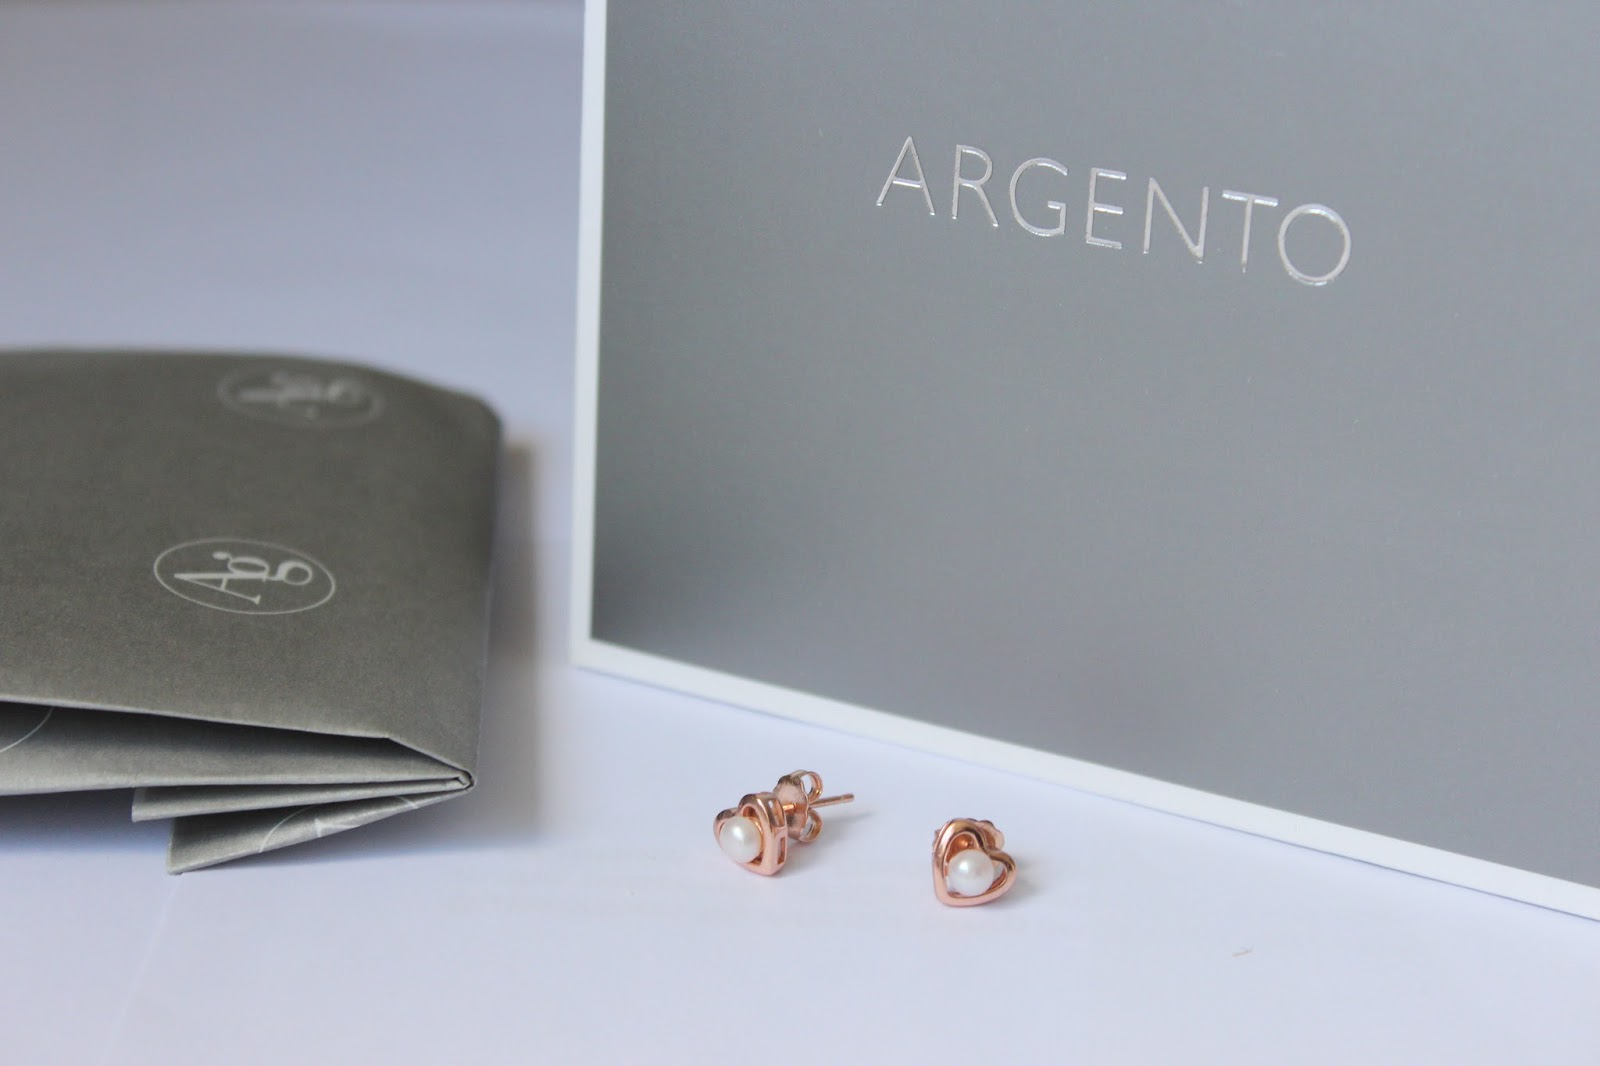 Argento earrings